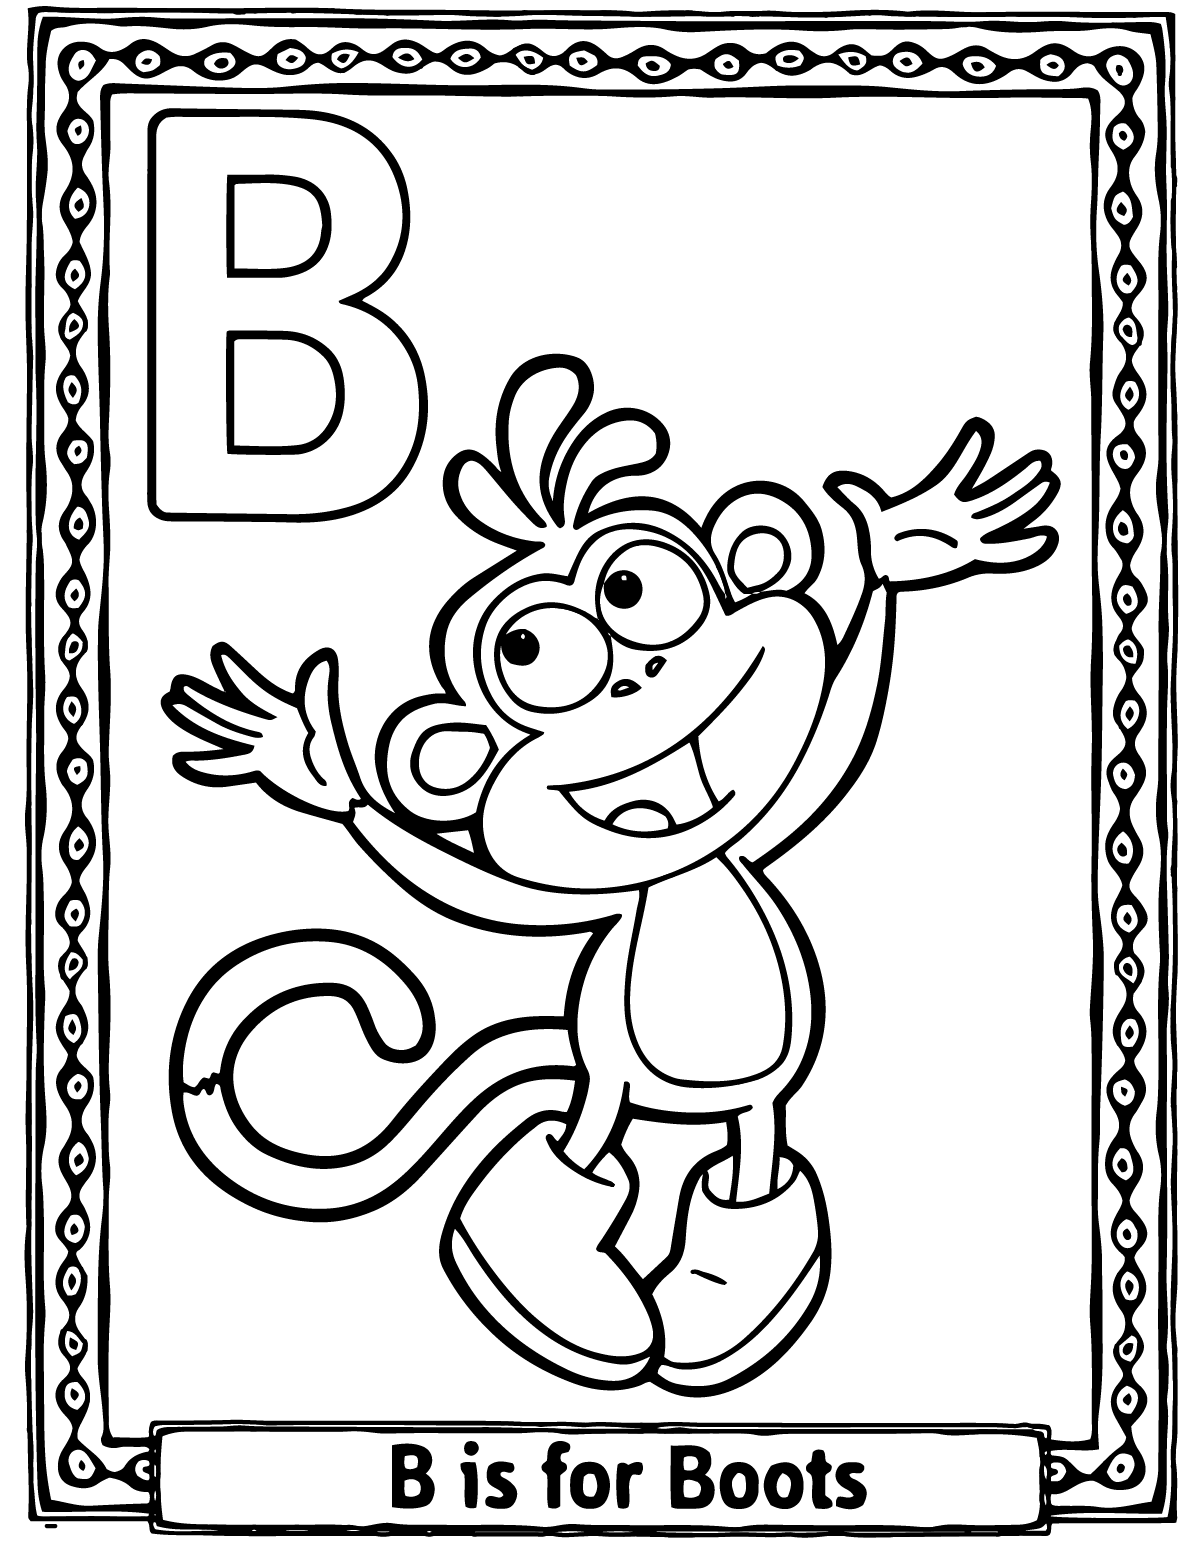 illuminated alphabet coloring pages free - photo#15